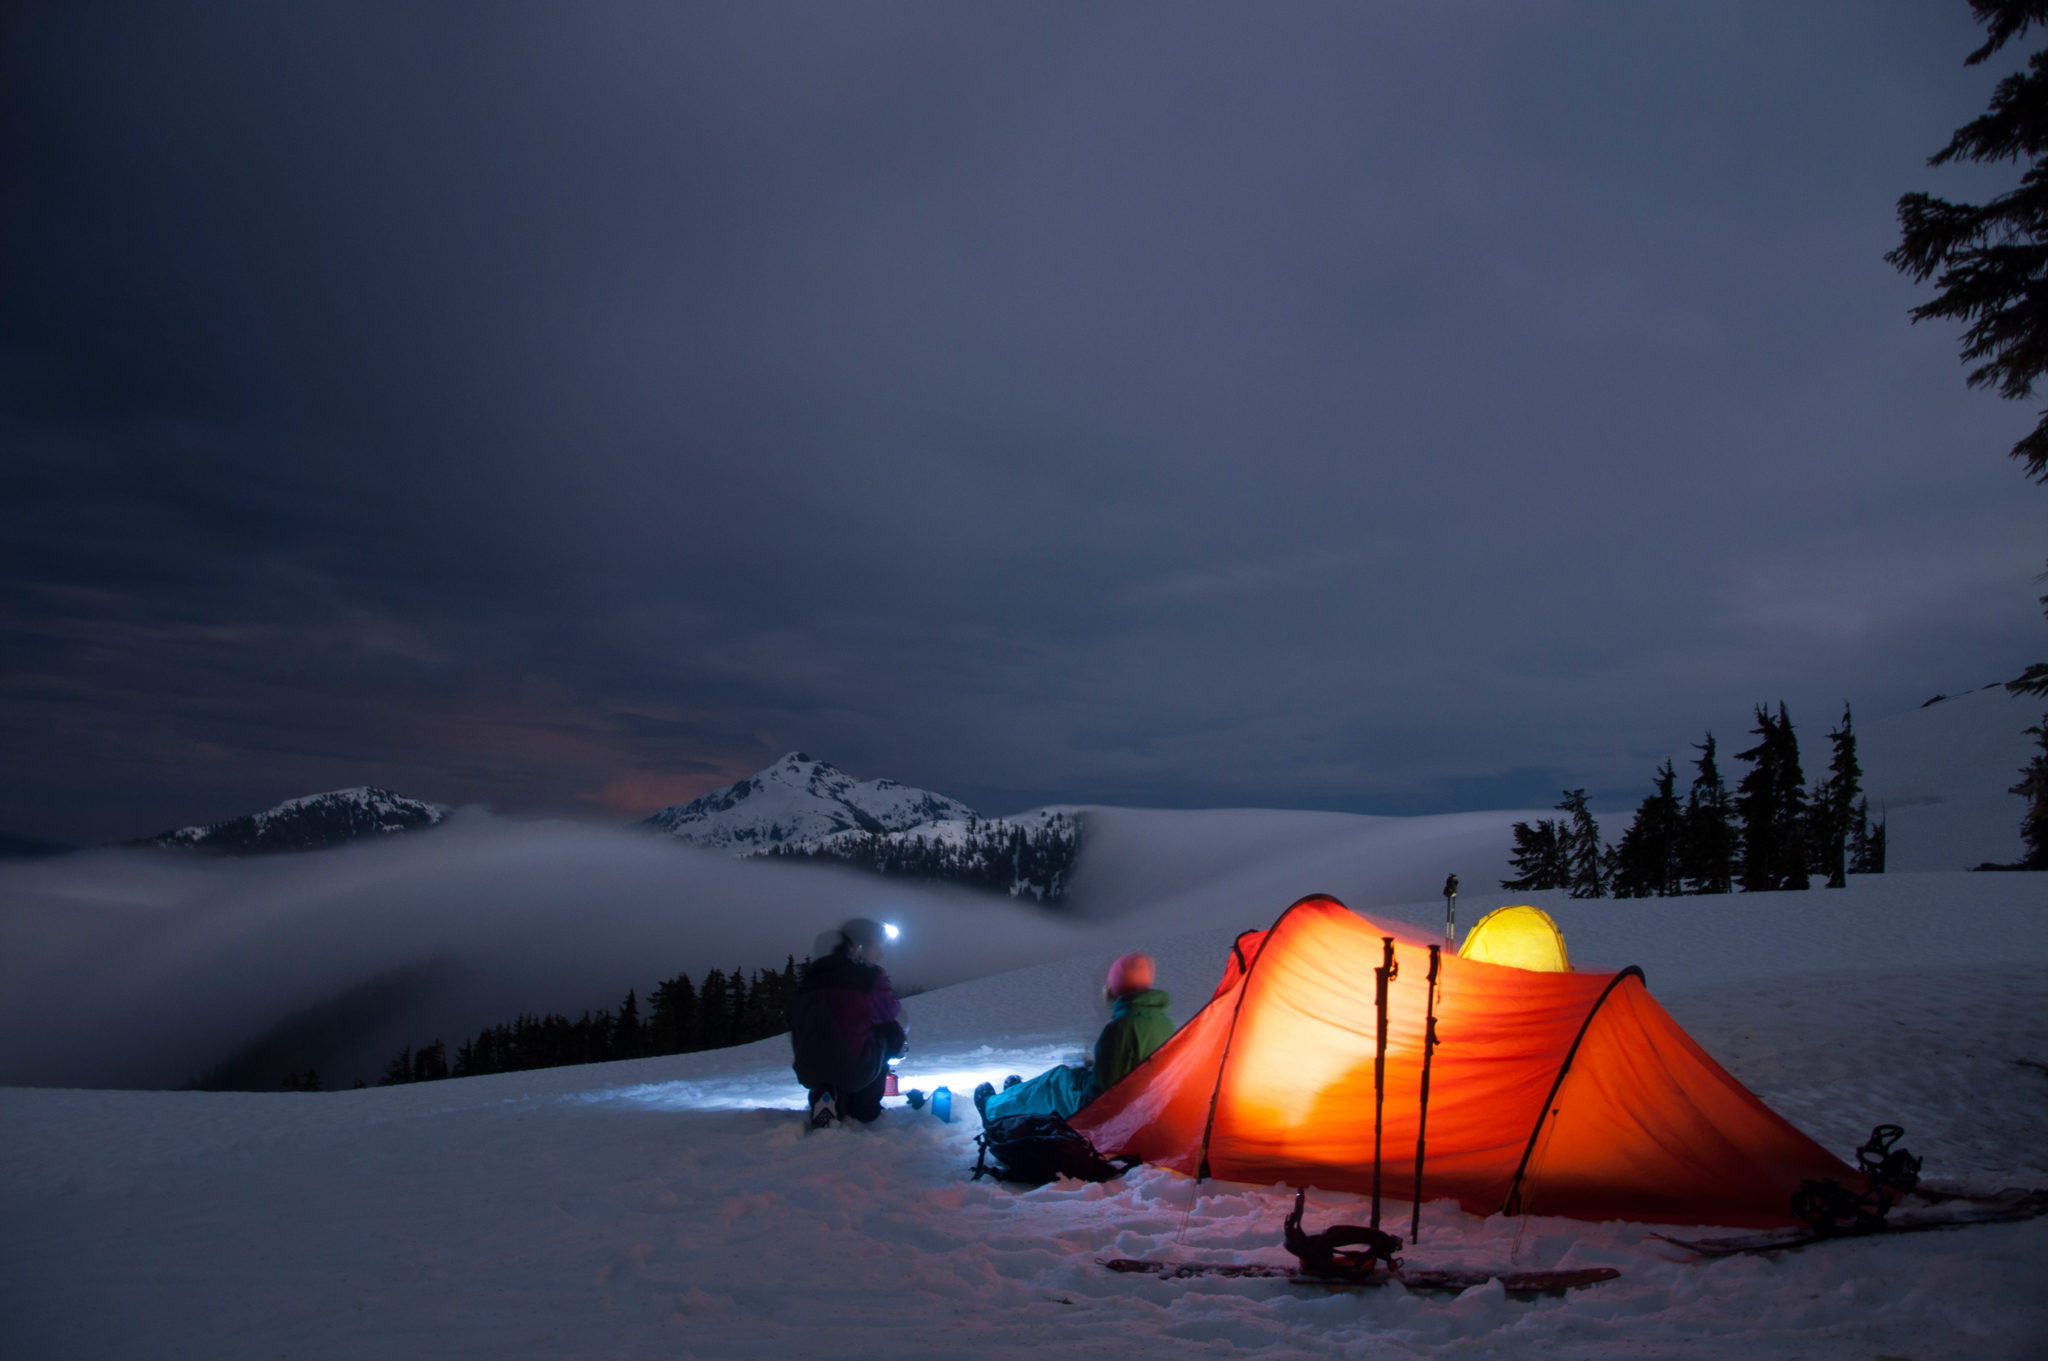 Ski Touring Winter Camping